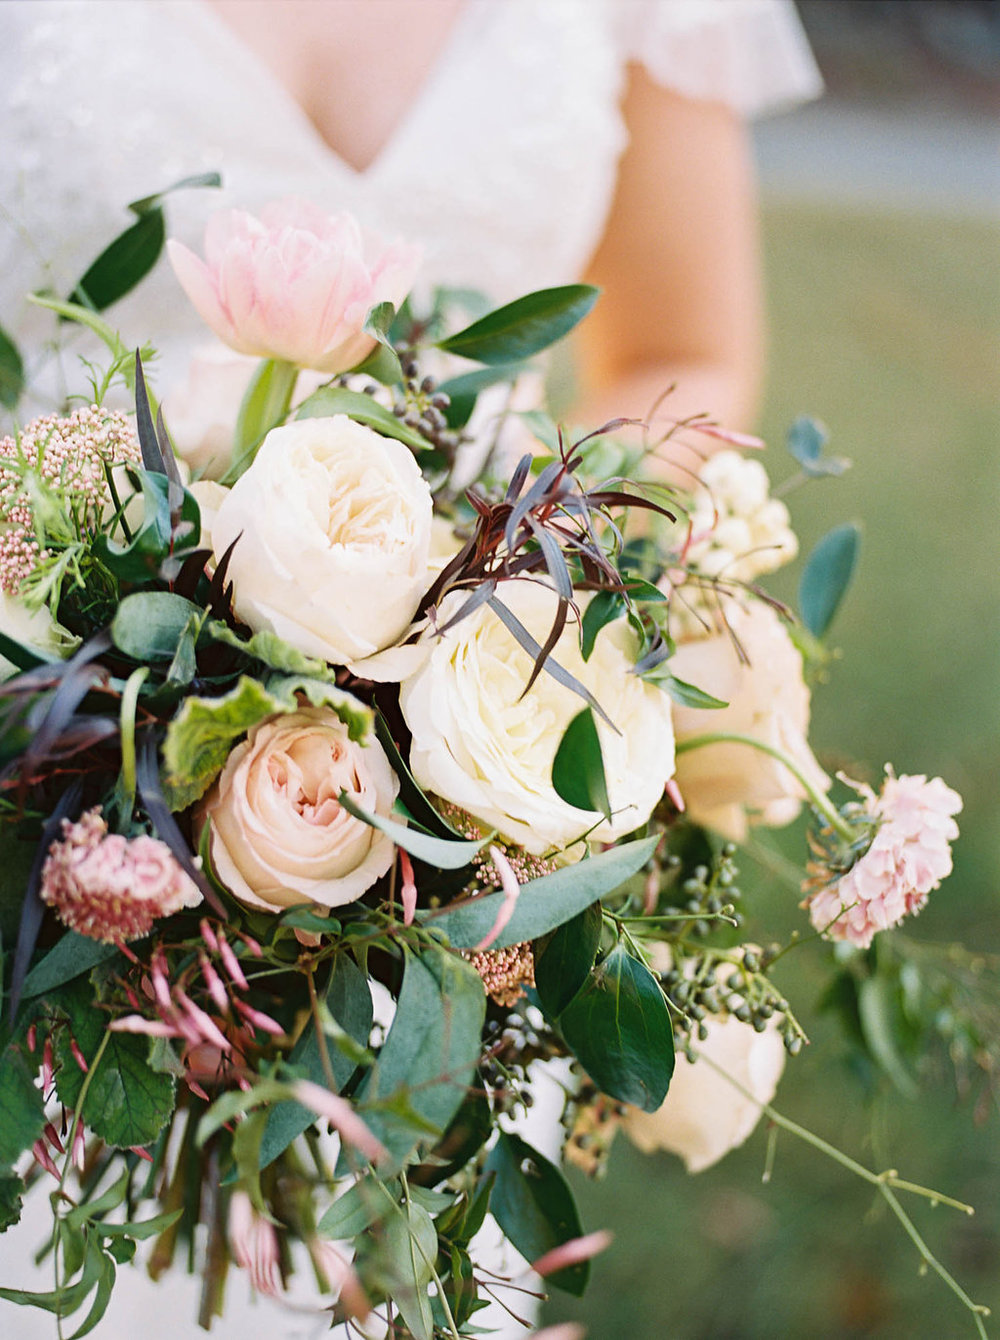 Lush, natural bridal bouquet with garden roses, tulips, blush ranunculus, and greenery in botanical garden // Southern Wedding Floral Design